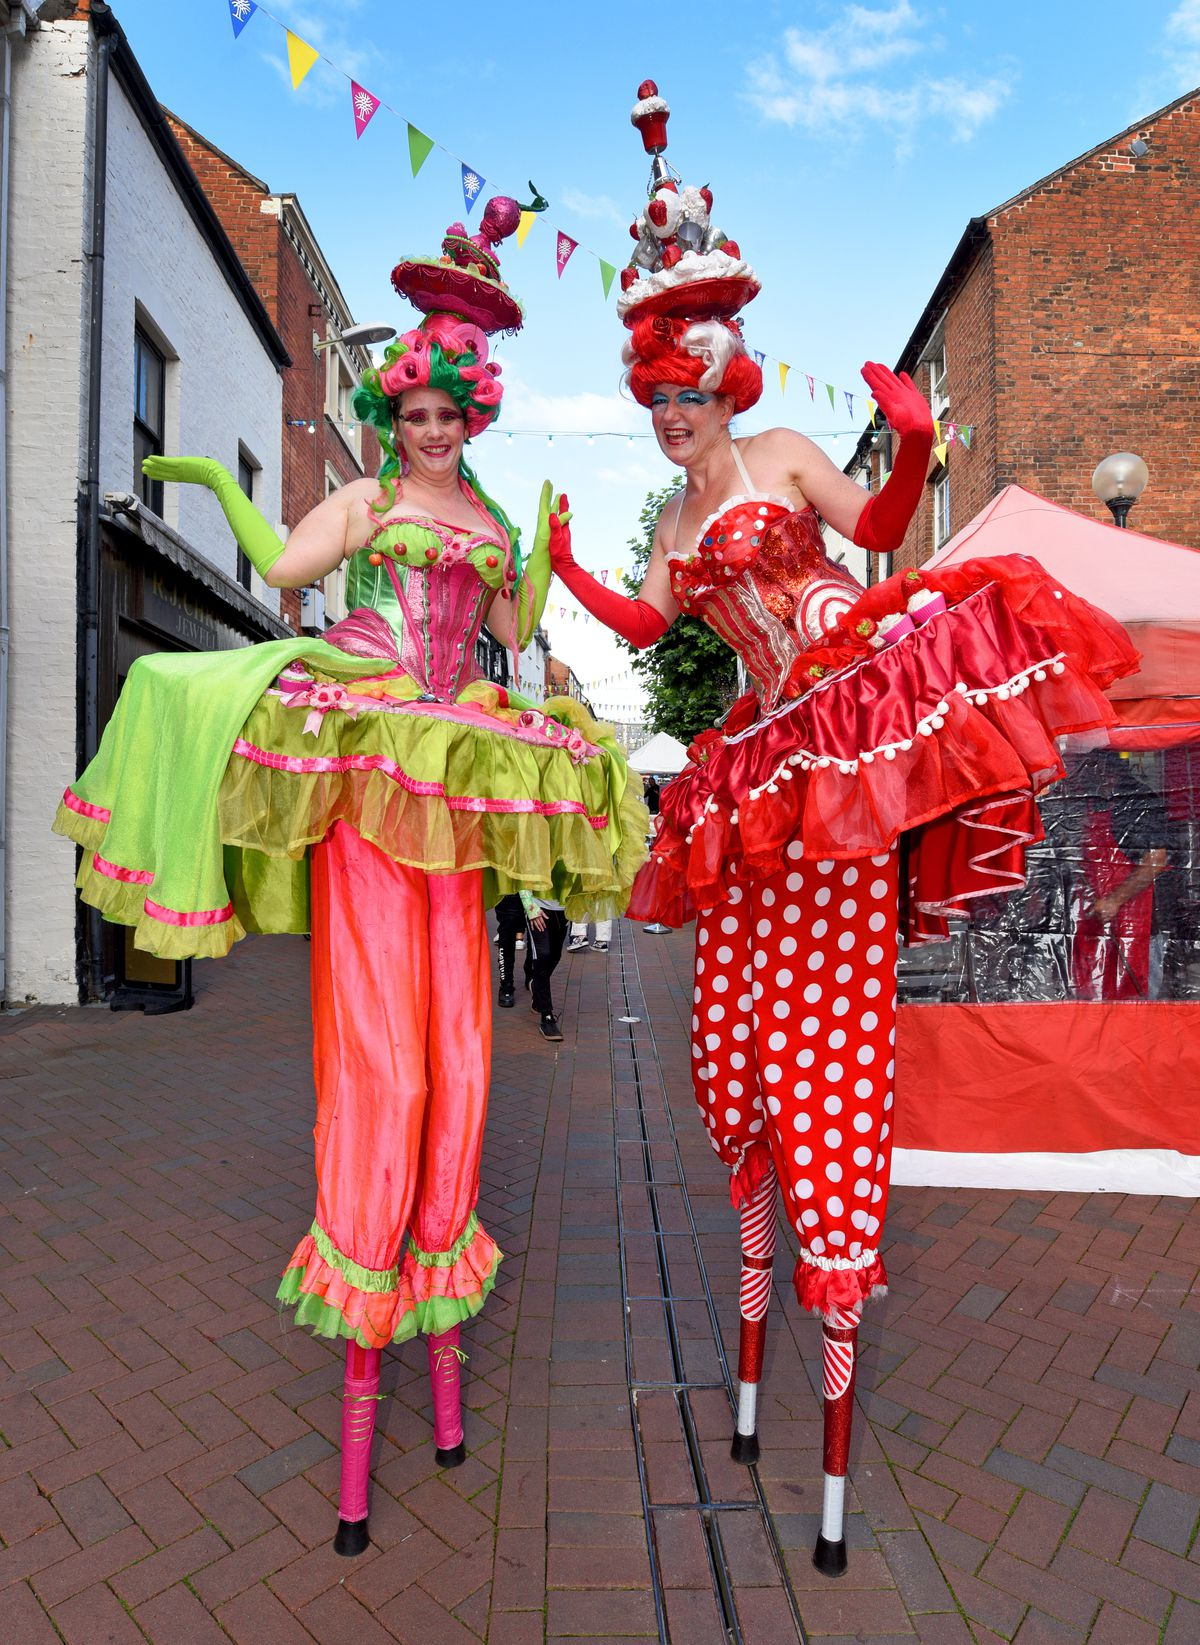 The Cake Ladies from Circus Antics entertained the crowds